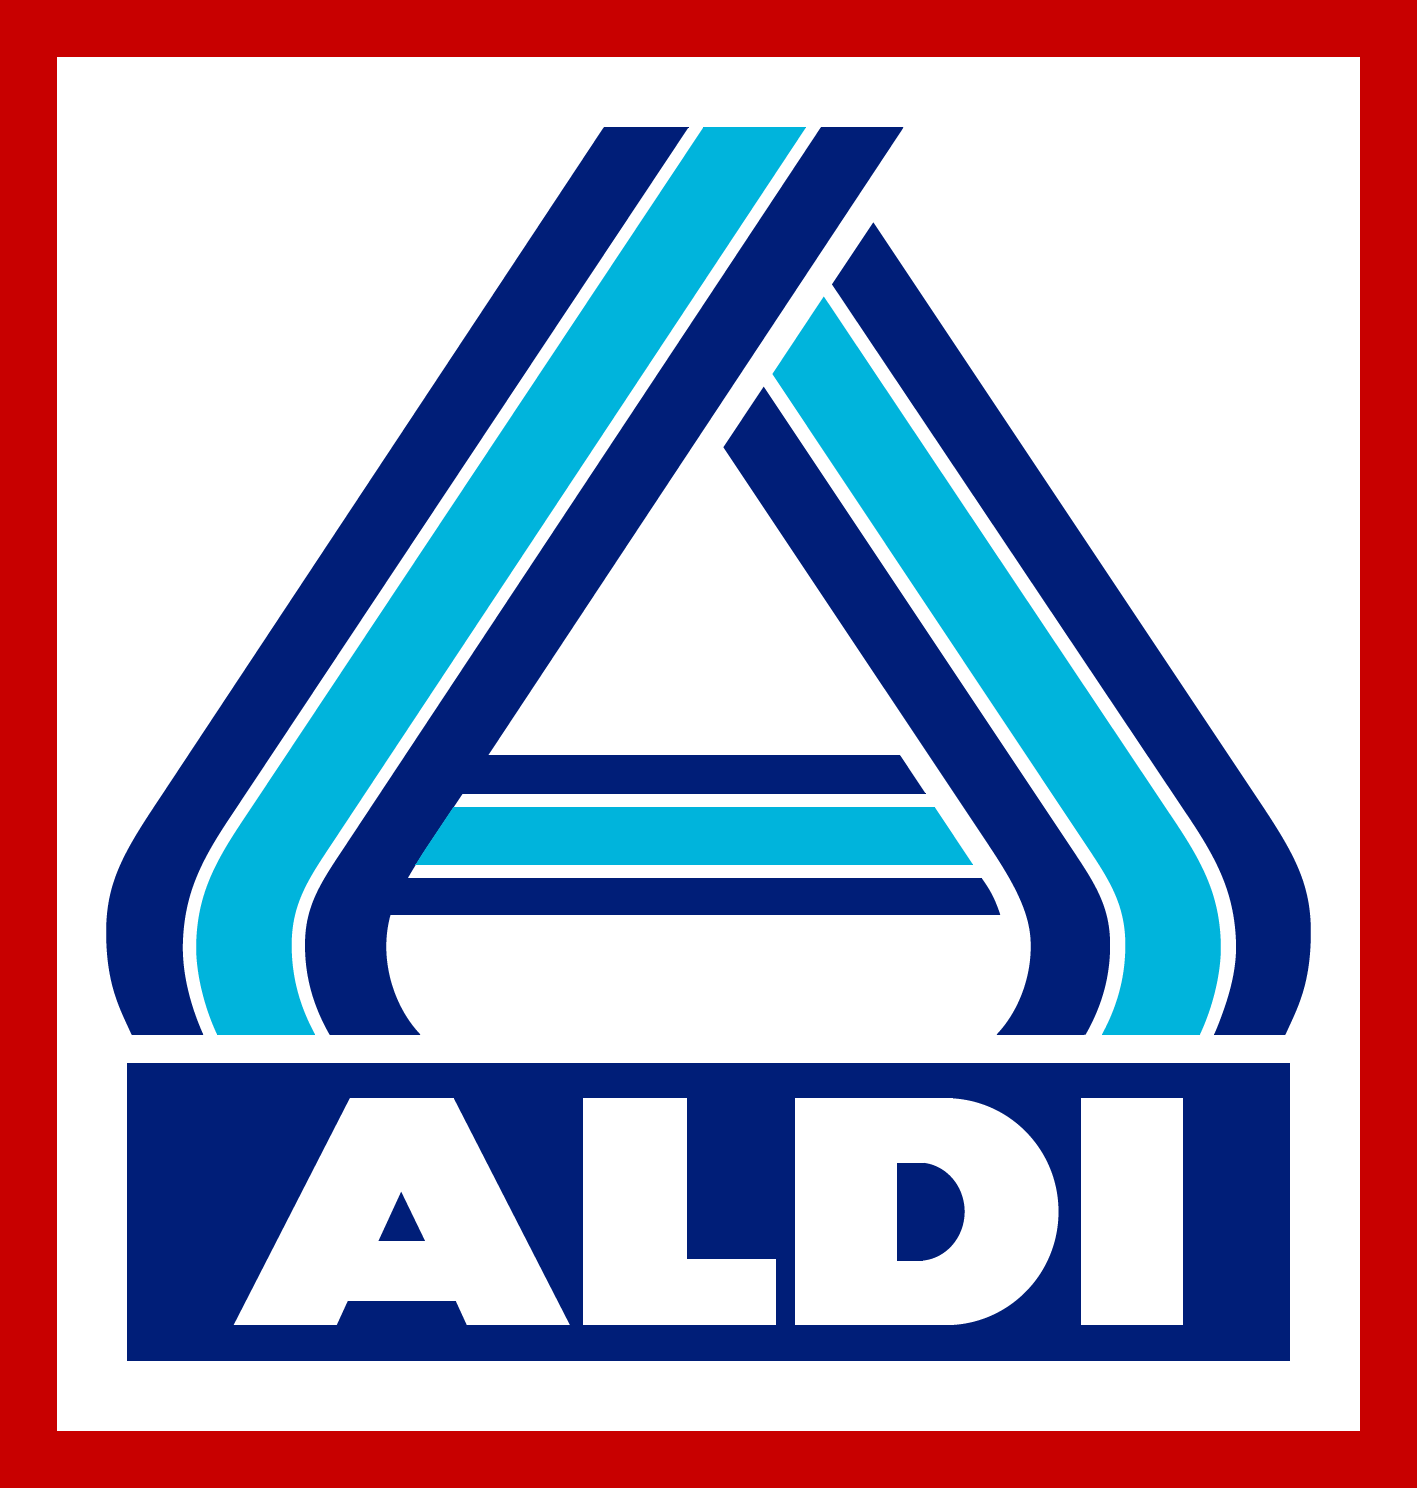 datei aldi nord logo community deutschland fandom powered by wikia. Black Bedroom Furniture Sets. Home Design Ideas